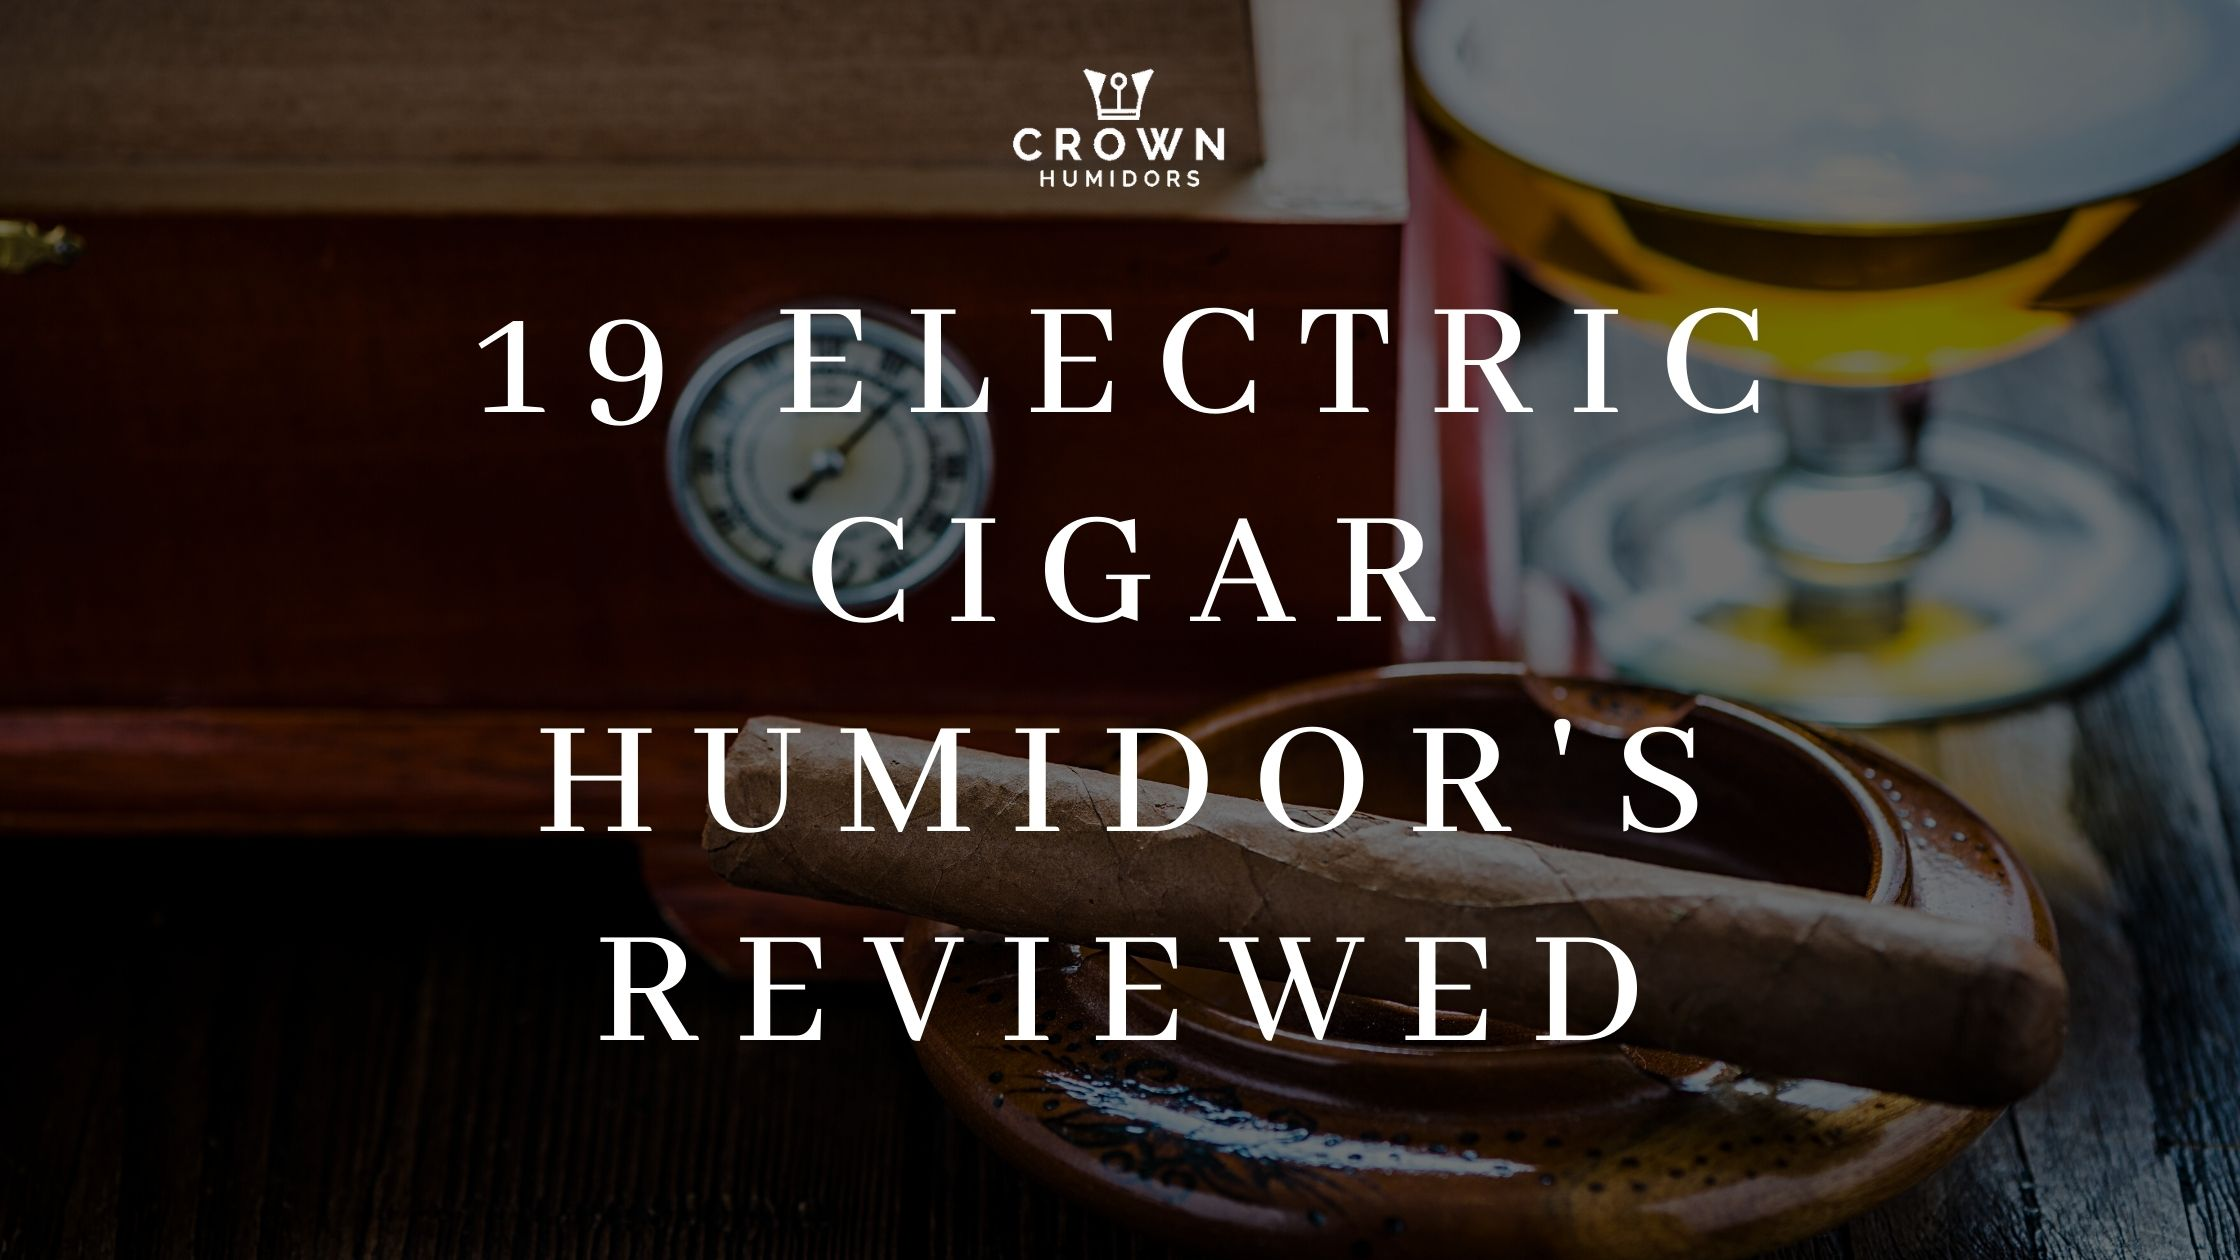 19 Electric Cigar Humidor's reviewed